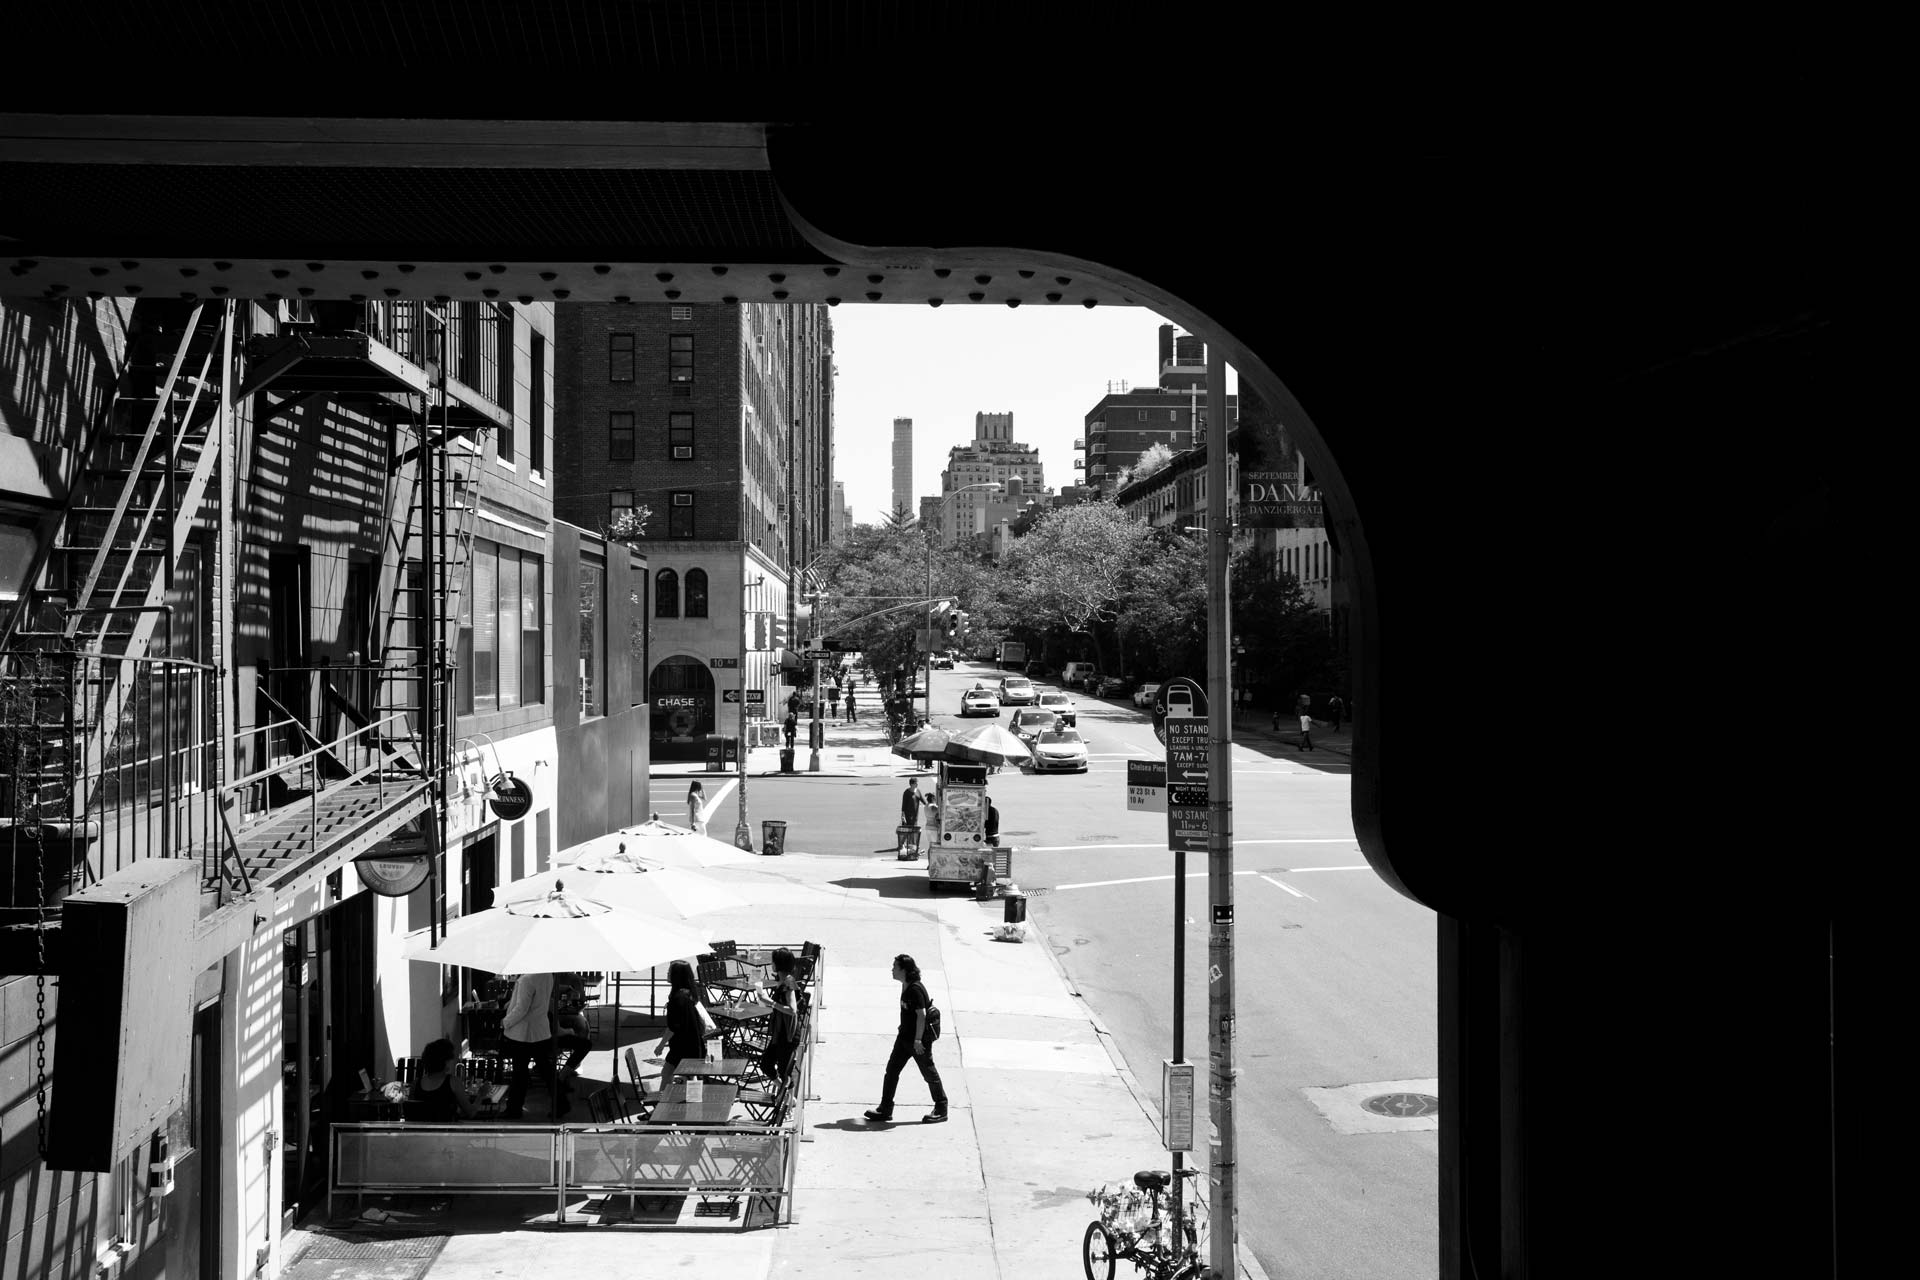 View from the High Line on 23rd and 10th Avenue